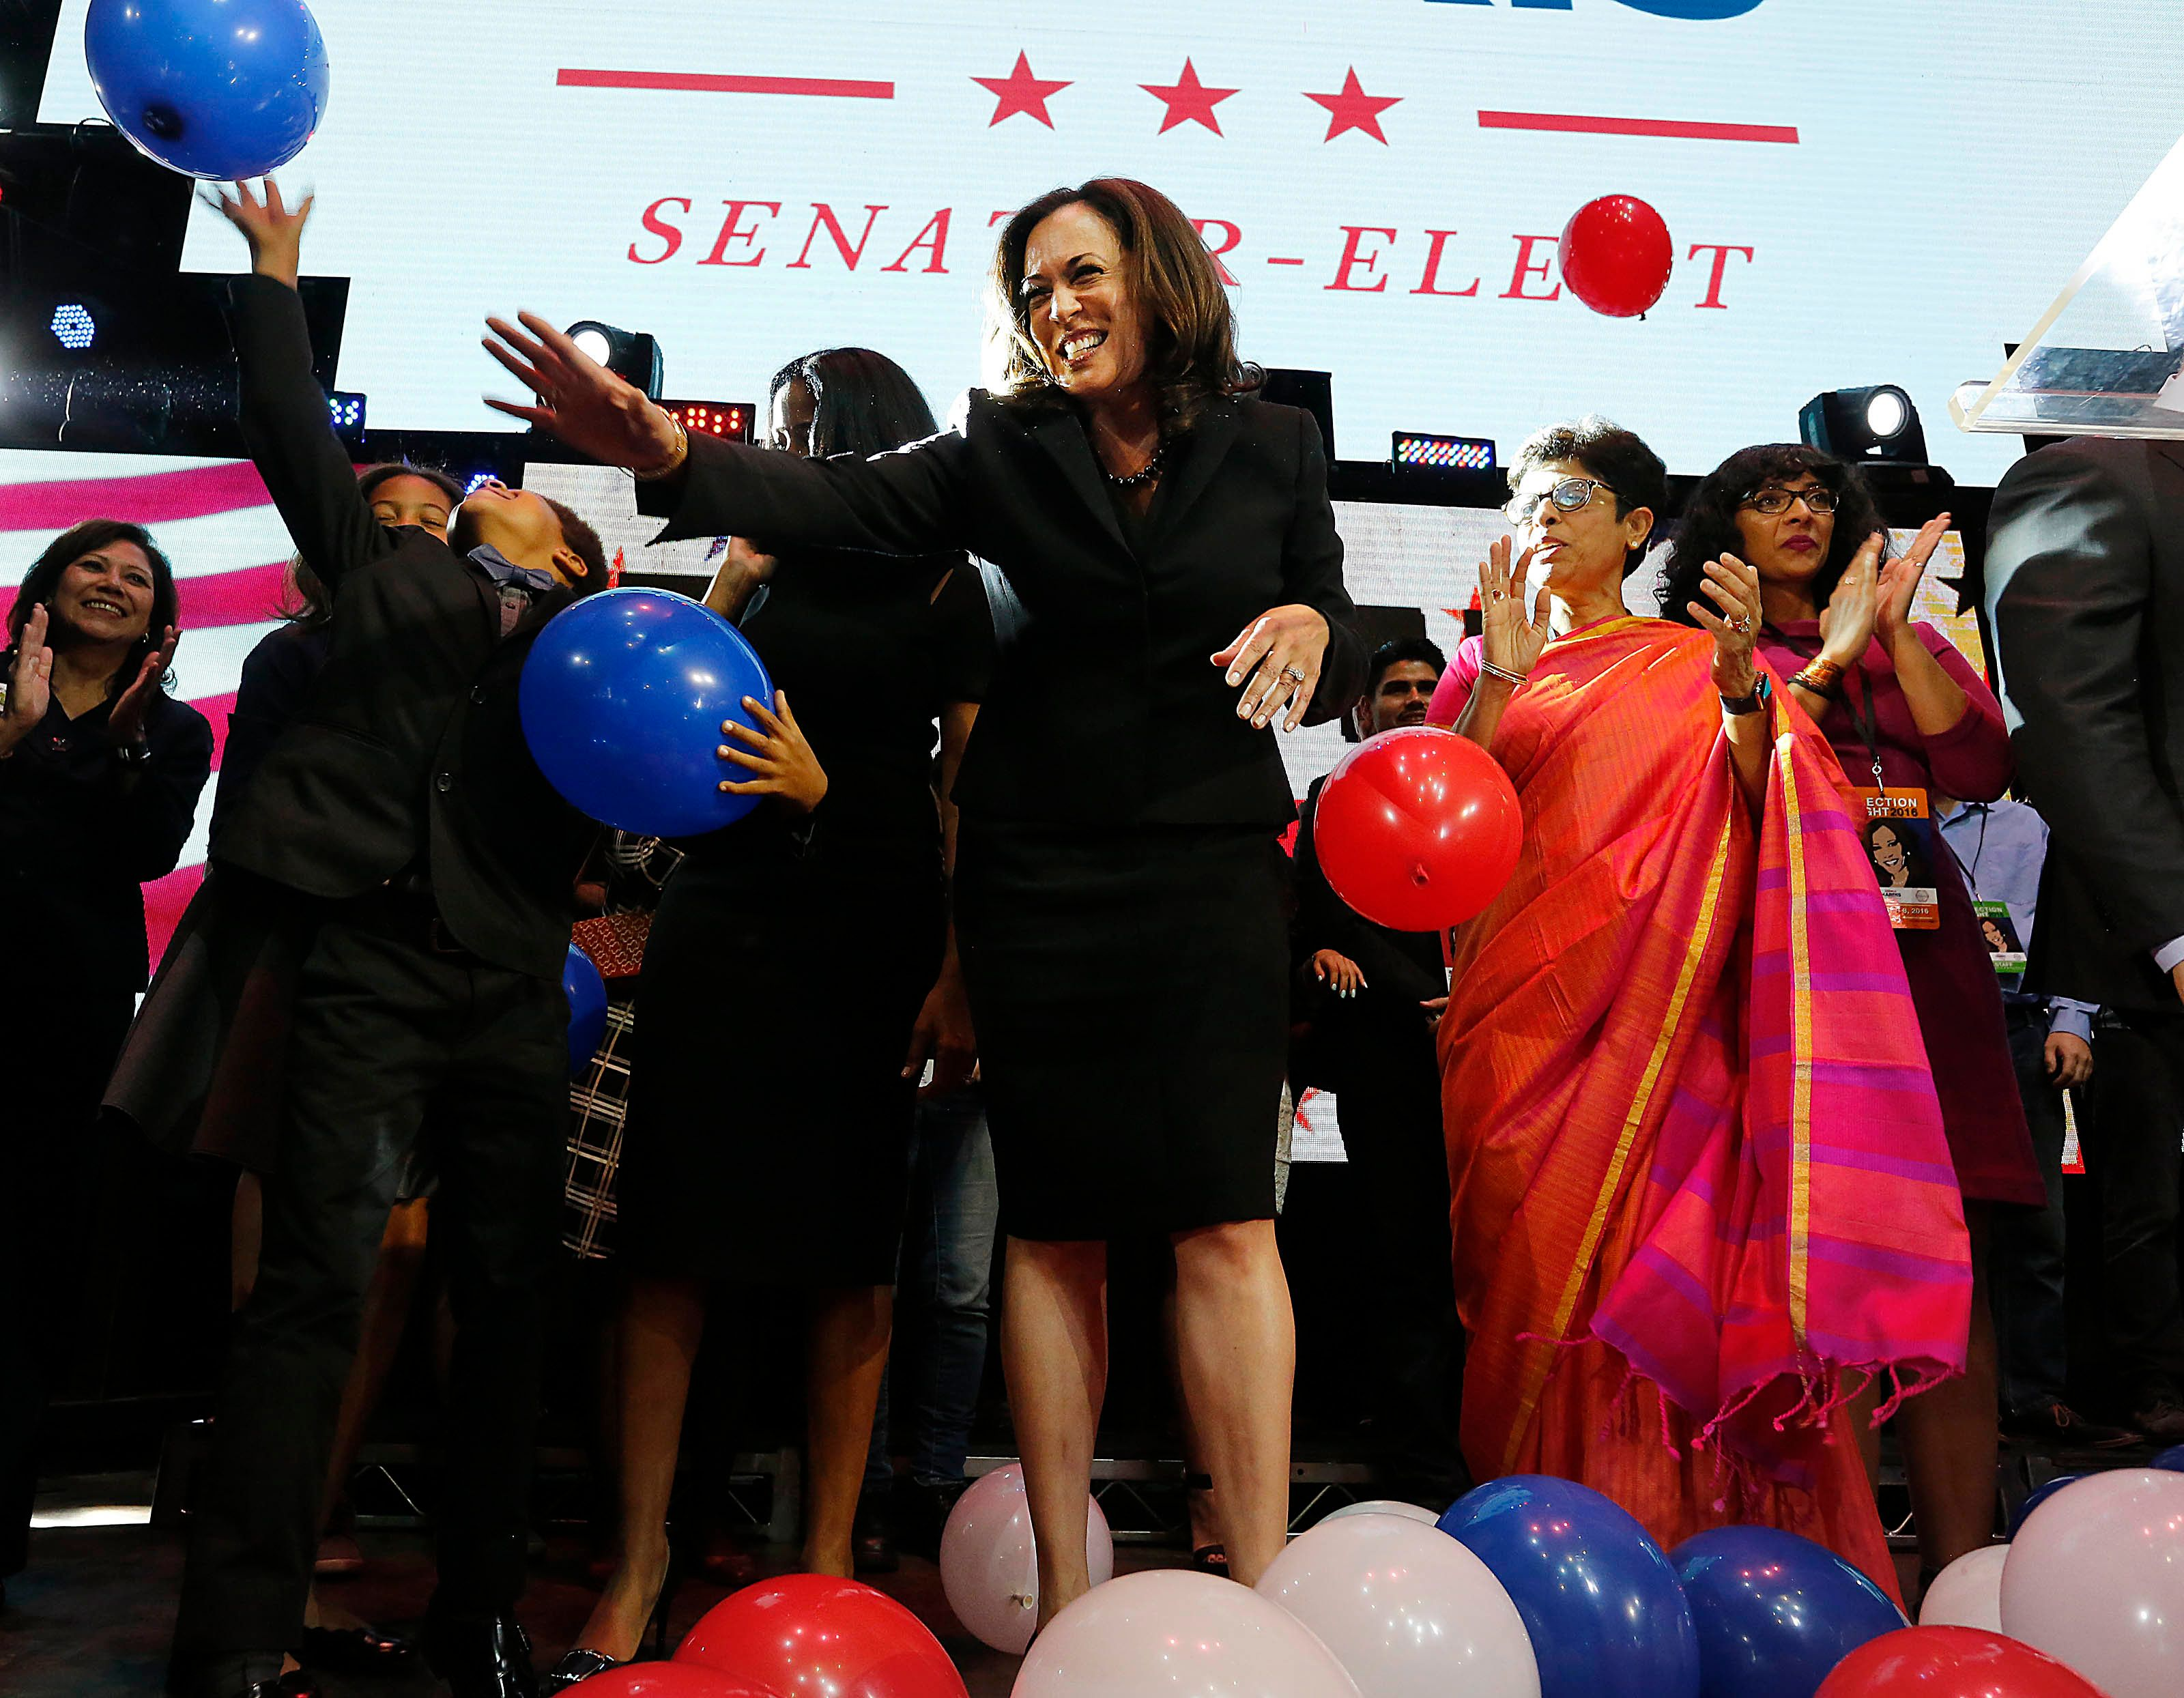 The celebration of Kamala Harris' win in California's Senate race was overshadowed by concerns over Donald Trump's presi